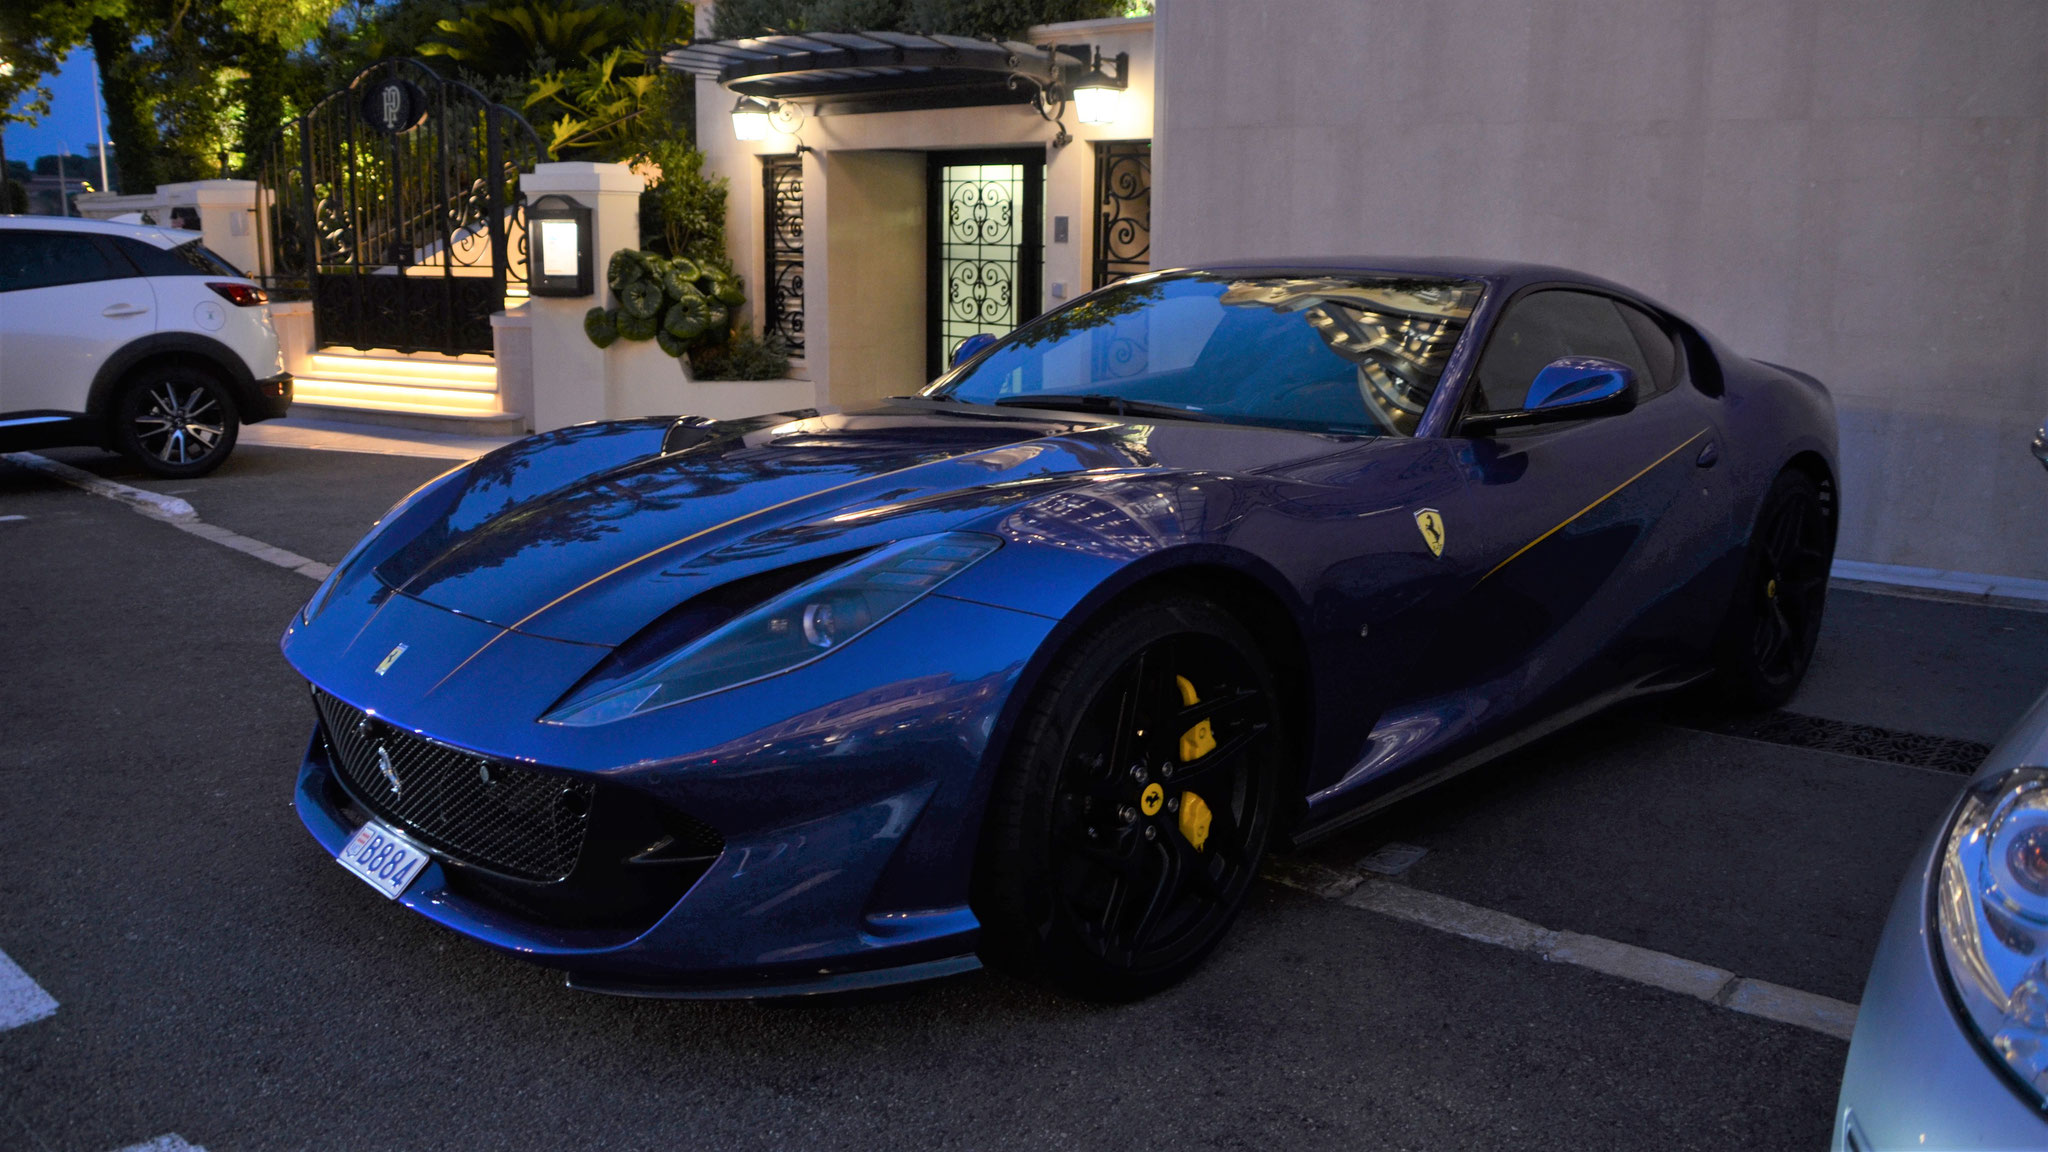 Ferrari 812 Superfast - B884 (MC)